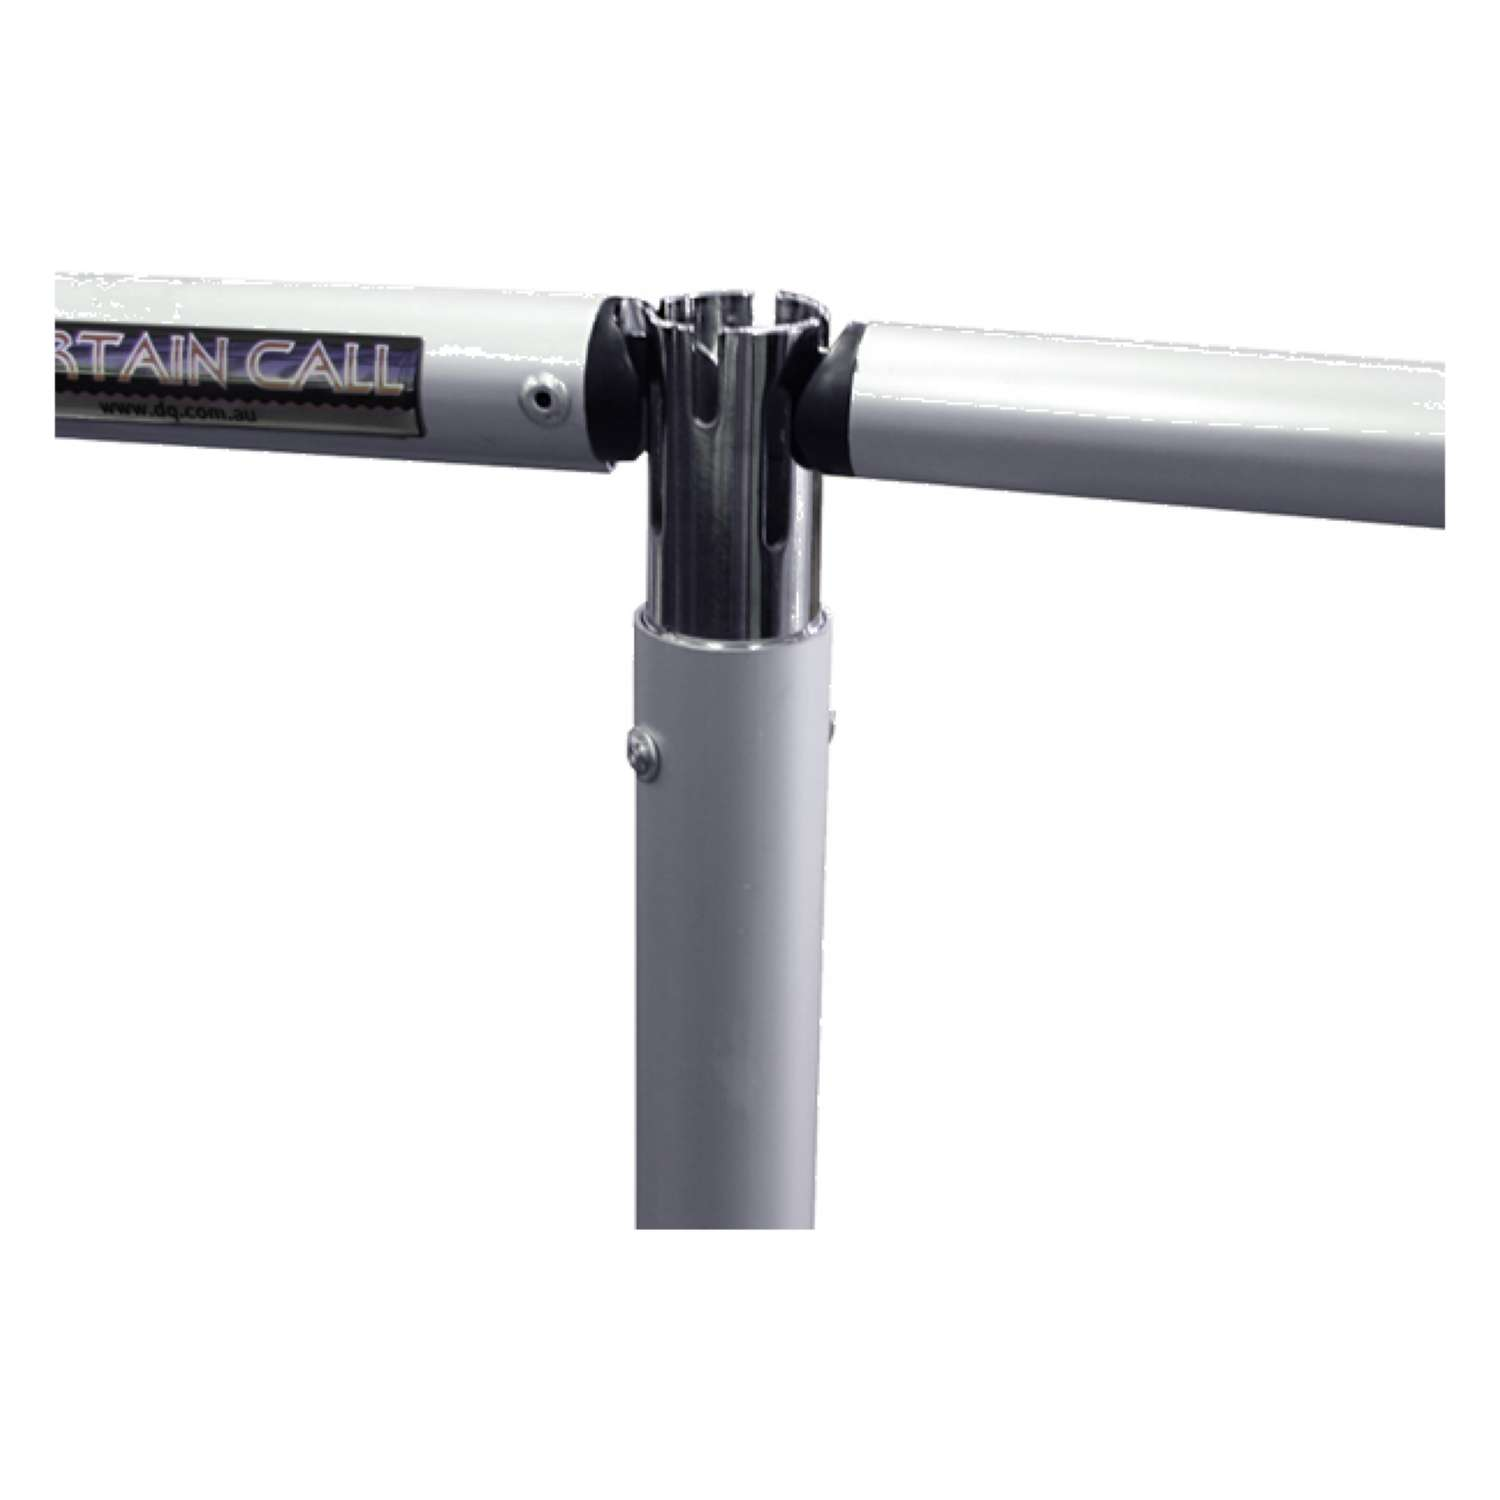 Curtain Call 1.9m-3.0m Telescopic Cross bar for Draping System 2